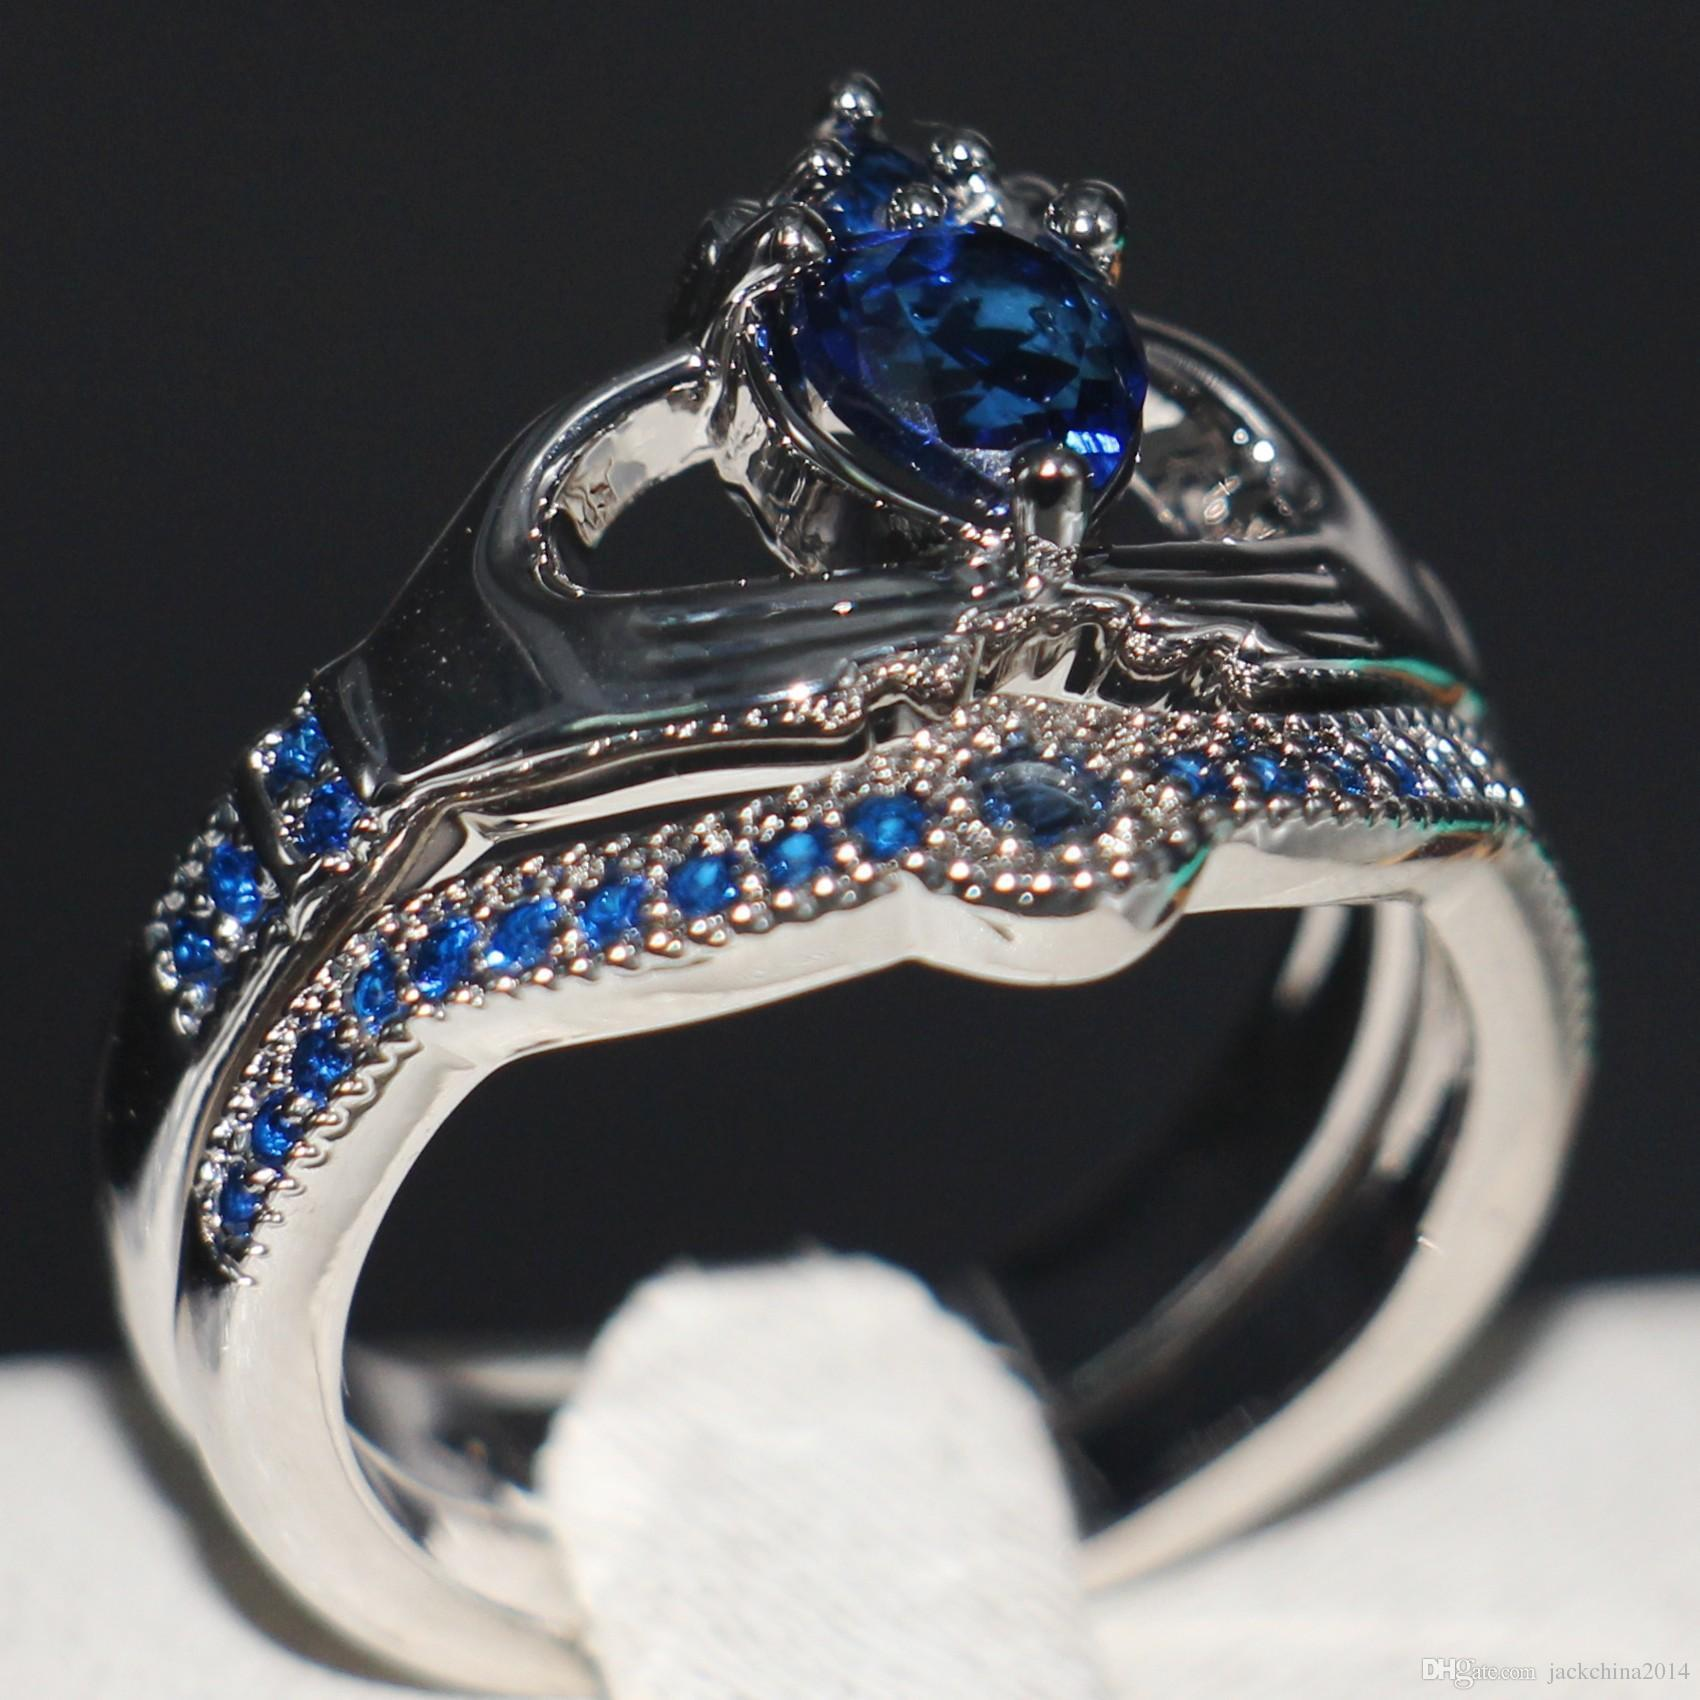 07b0469c8d Ladies 10k White Gold Solid Heart Shaped Sapphire CZ Halo Ring Size 5-9